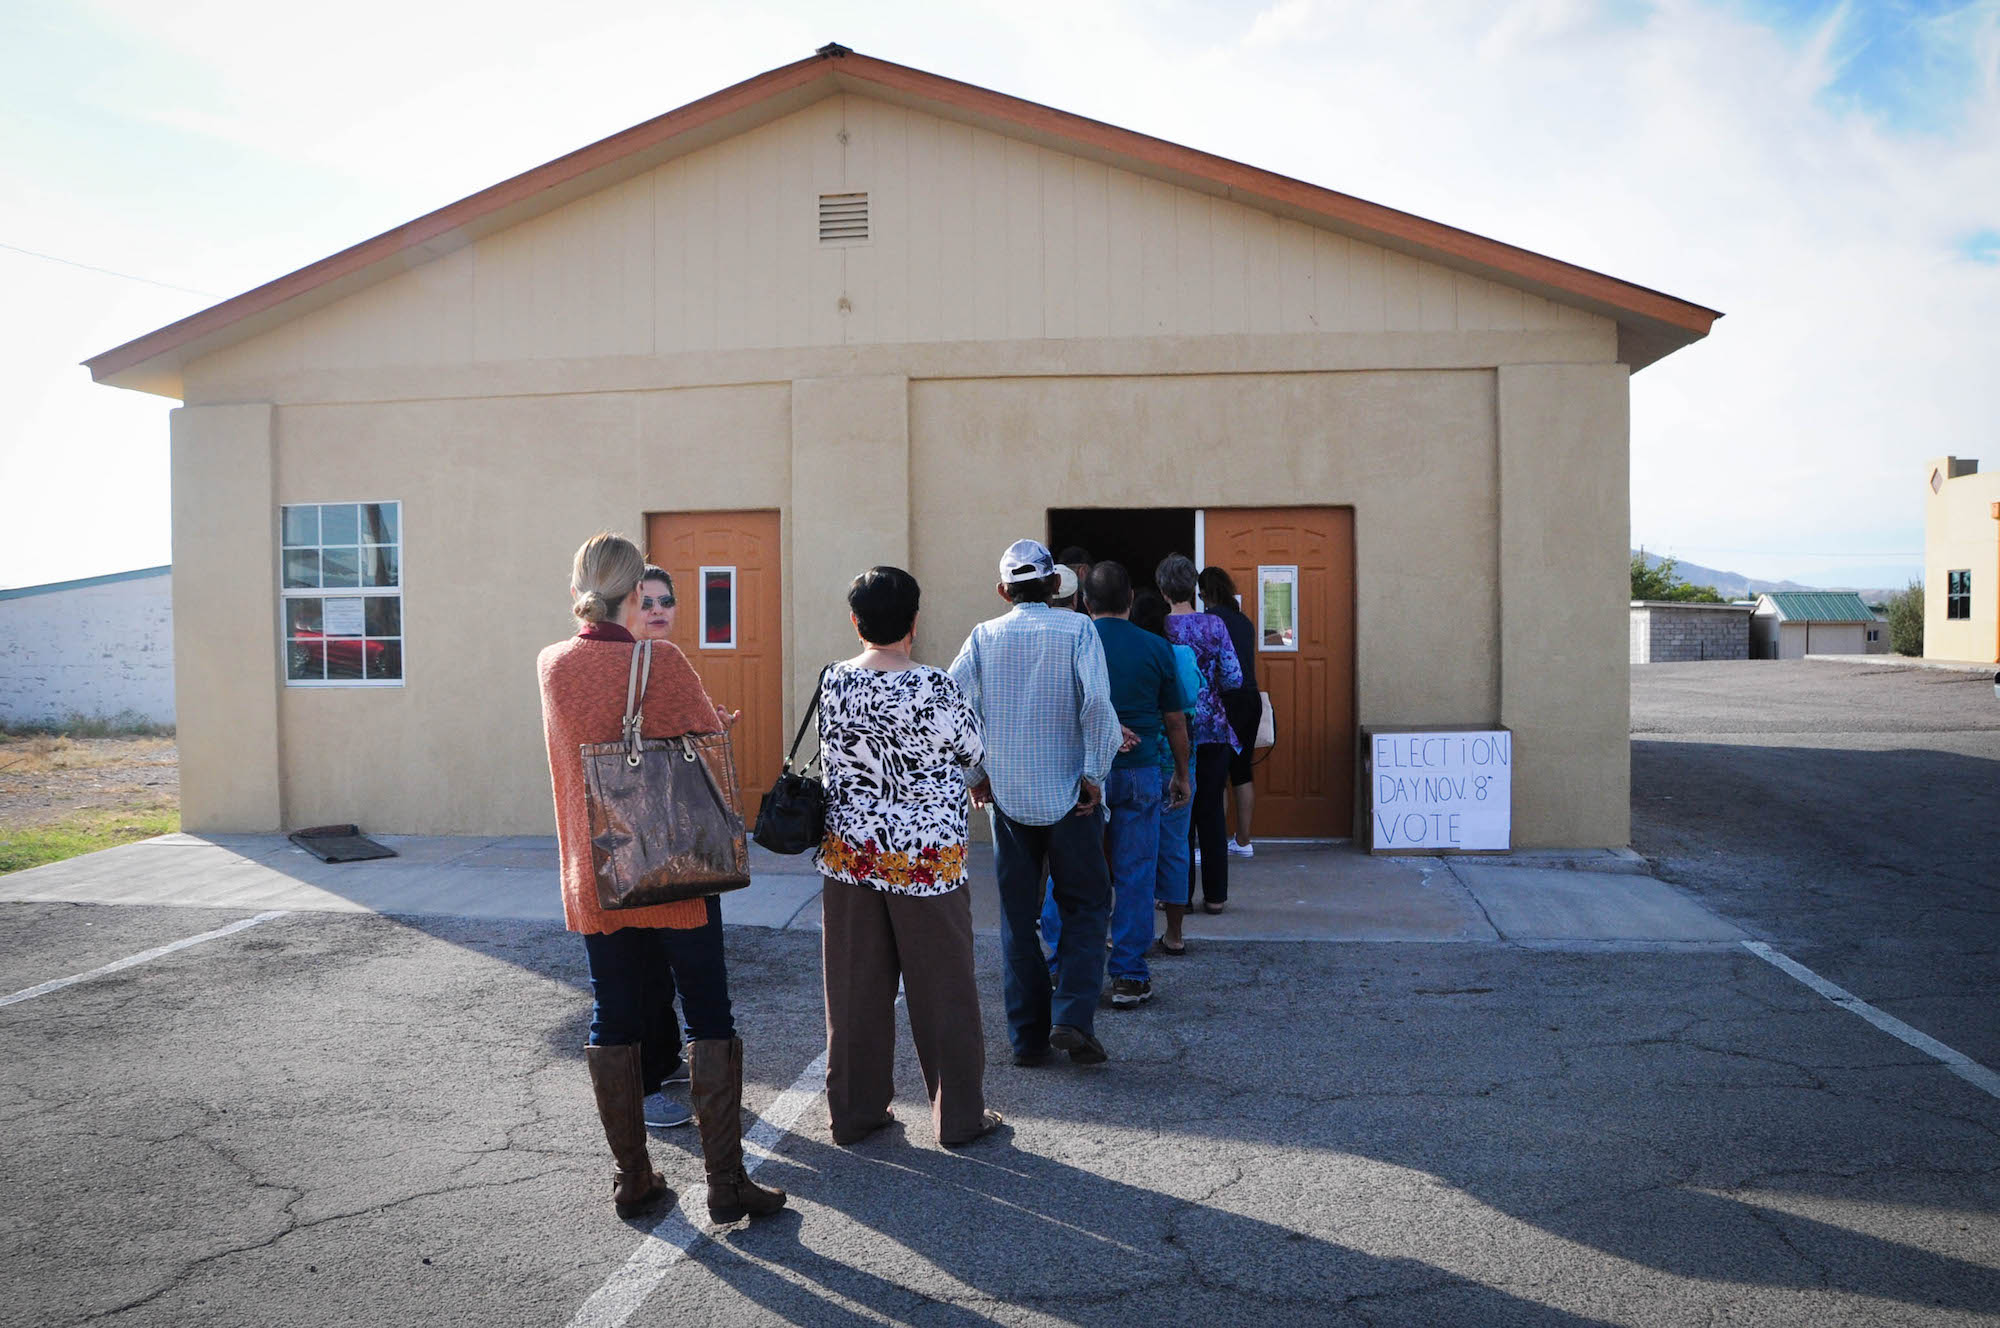 Voters queue up in Presidio County, which historically has had the lowest turnout in Texas.